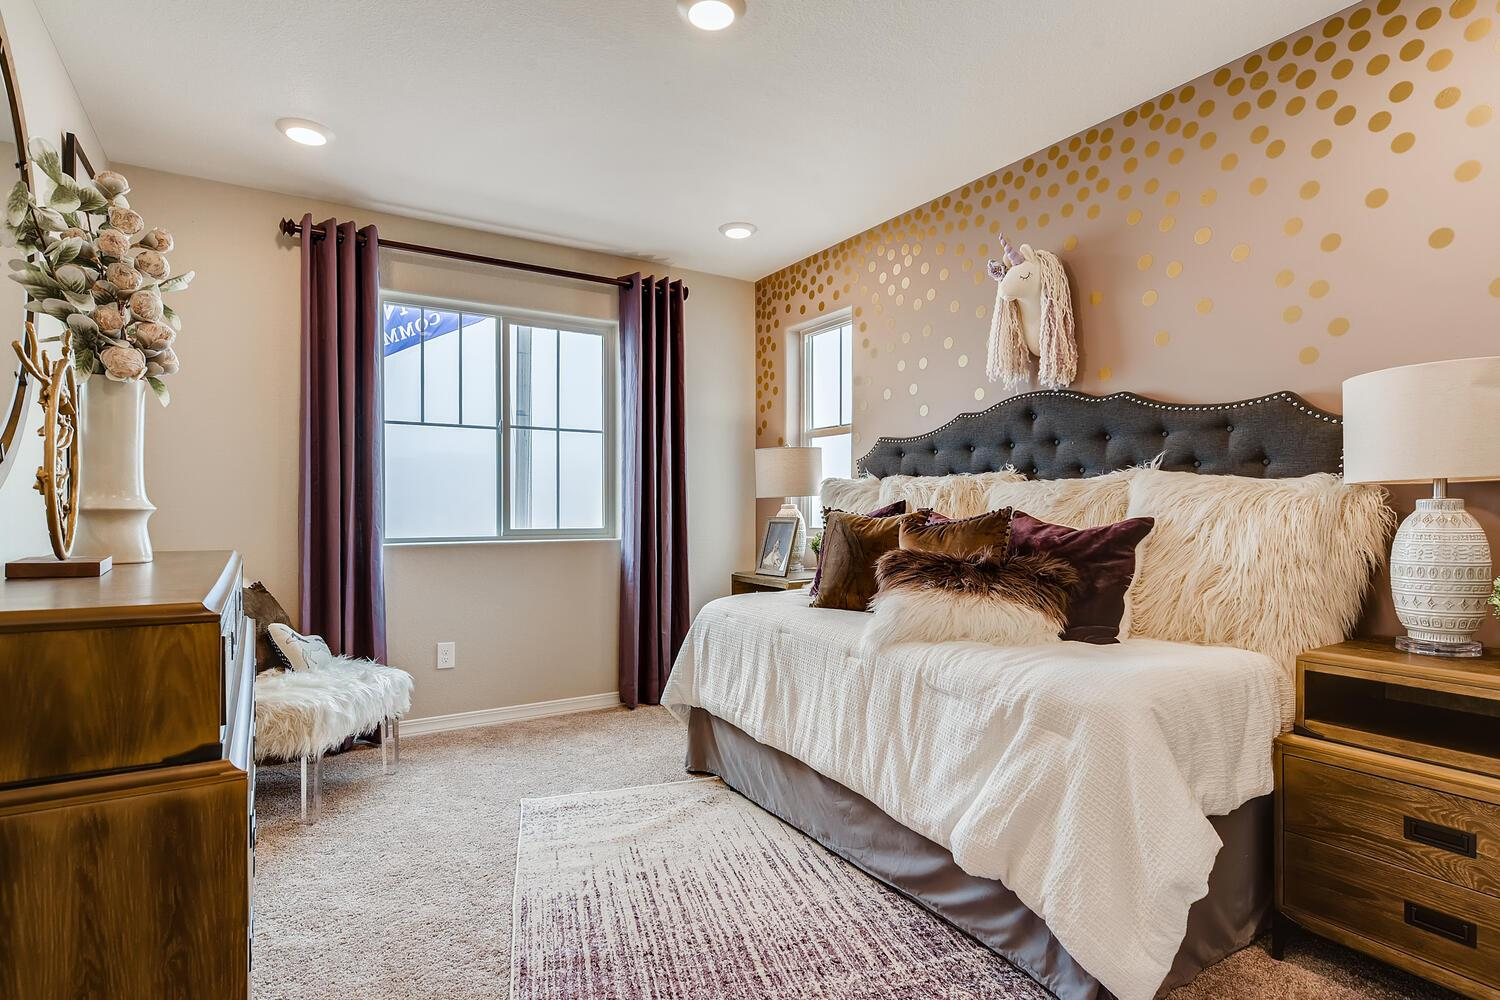 Bedroom featured in the Platinum (Residence 29204) By Century Communities in Colorado Springs, CO